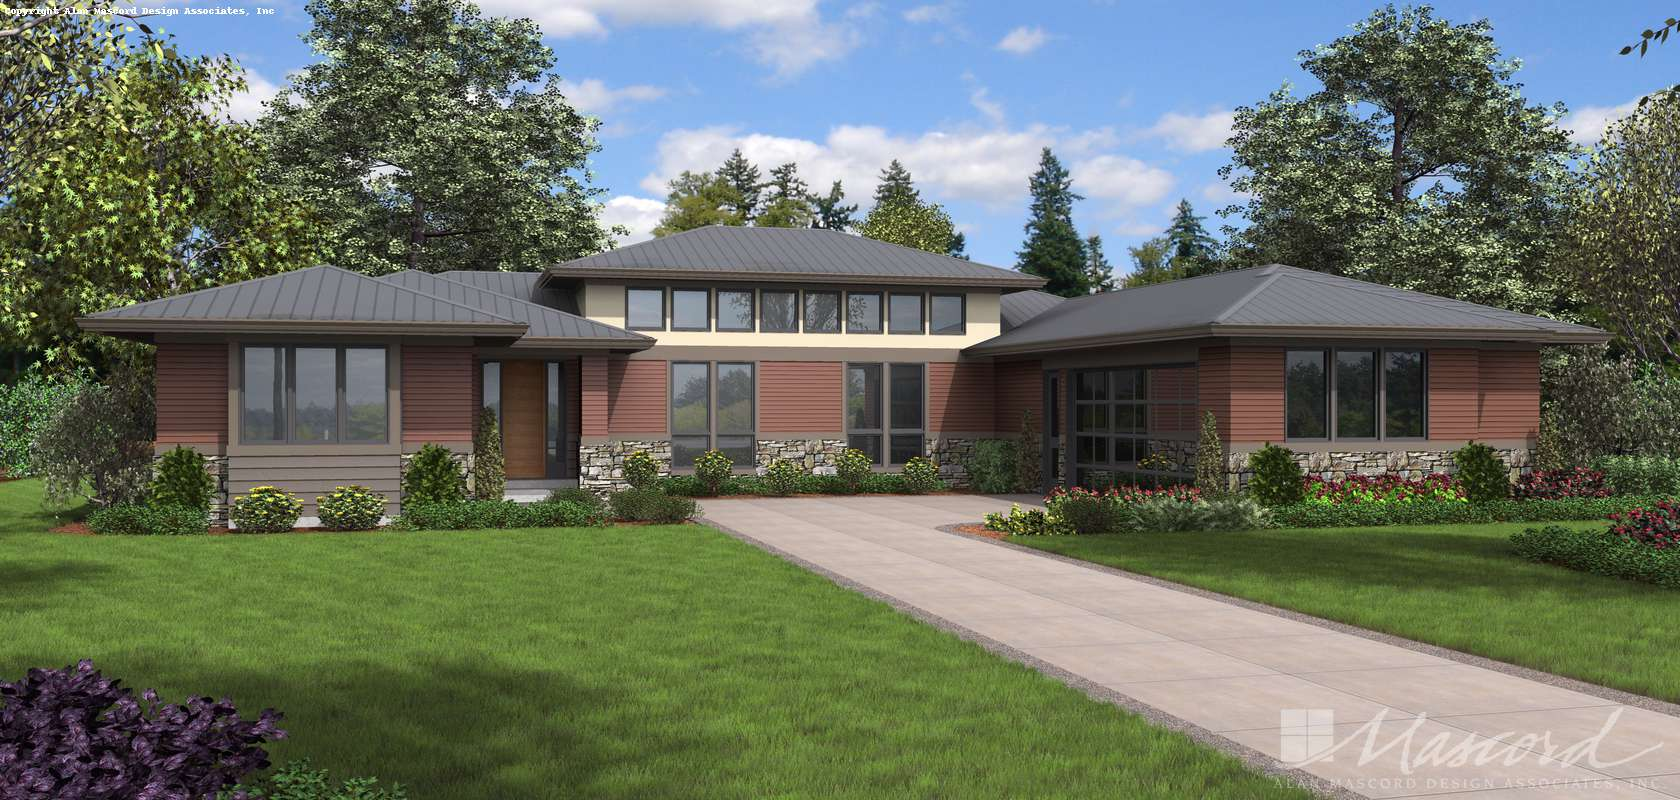 Mascord House Plan 1240B: The Mapleview